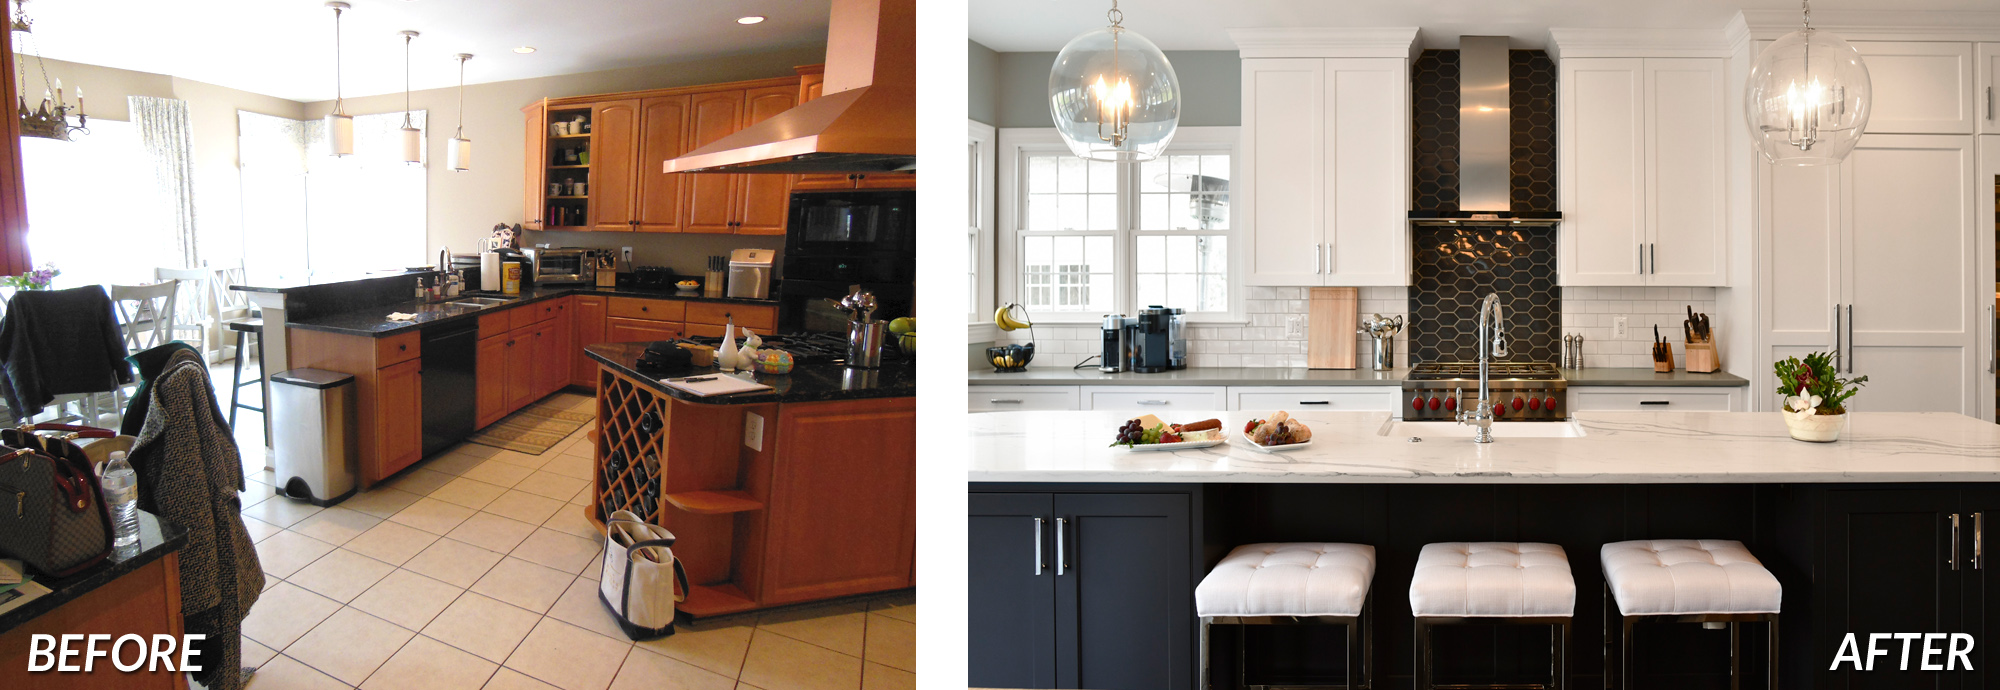 BOWA Design Build - Leesburg Kitchen Remodel Before & After